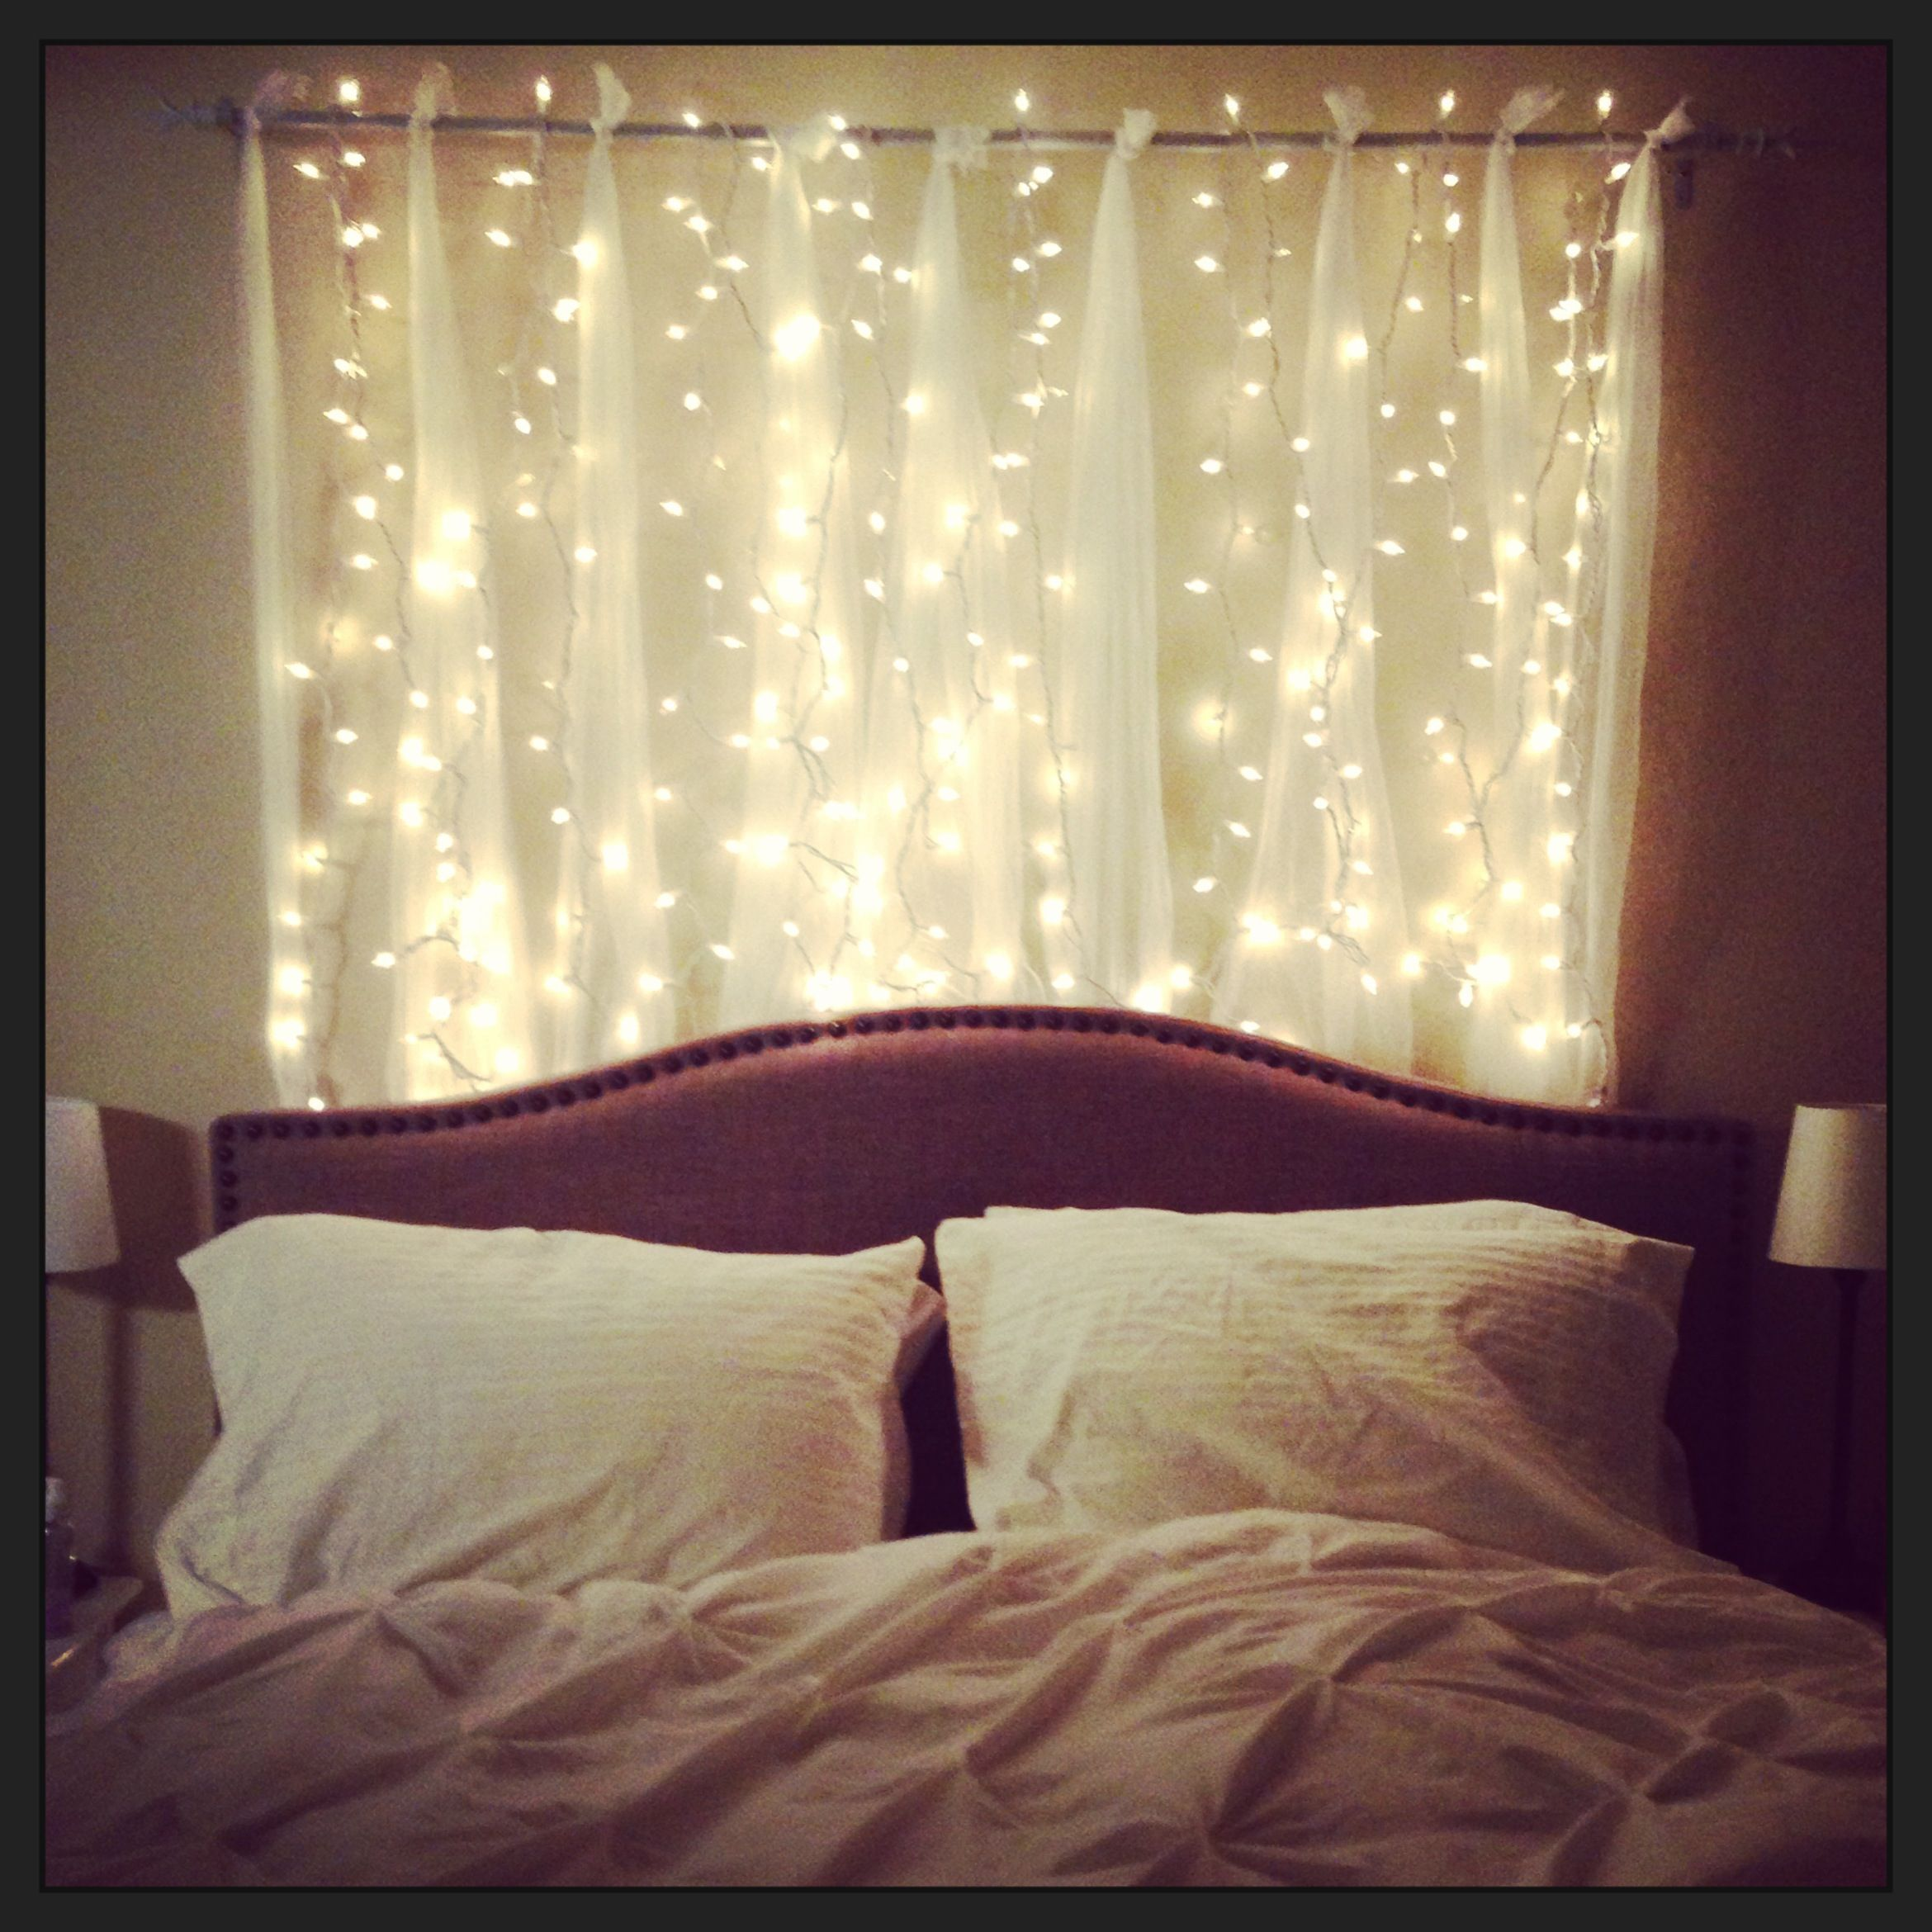 twinkle lights in bedroom